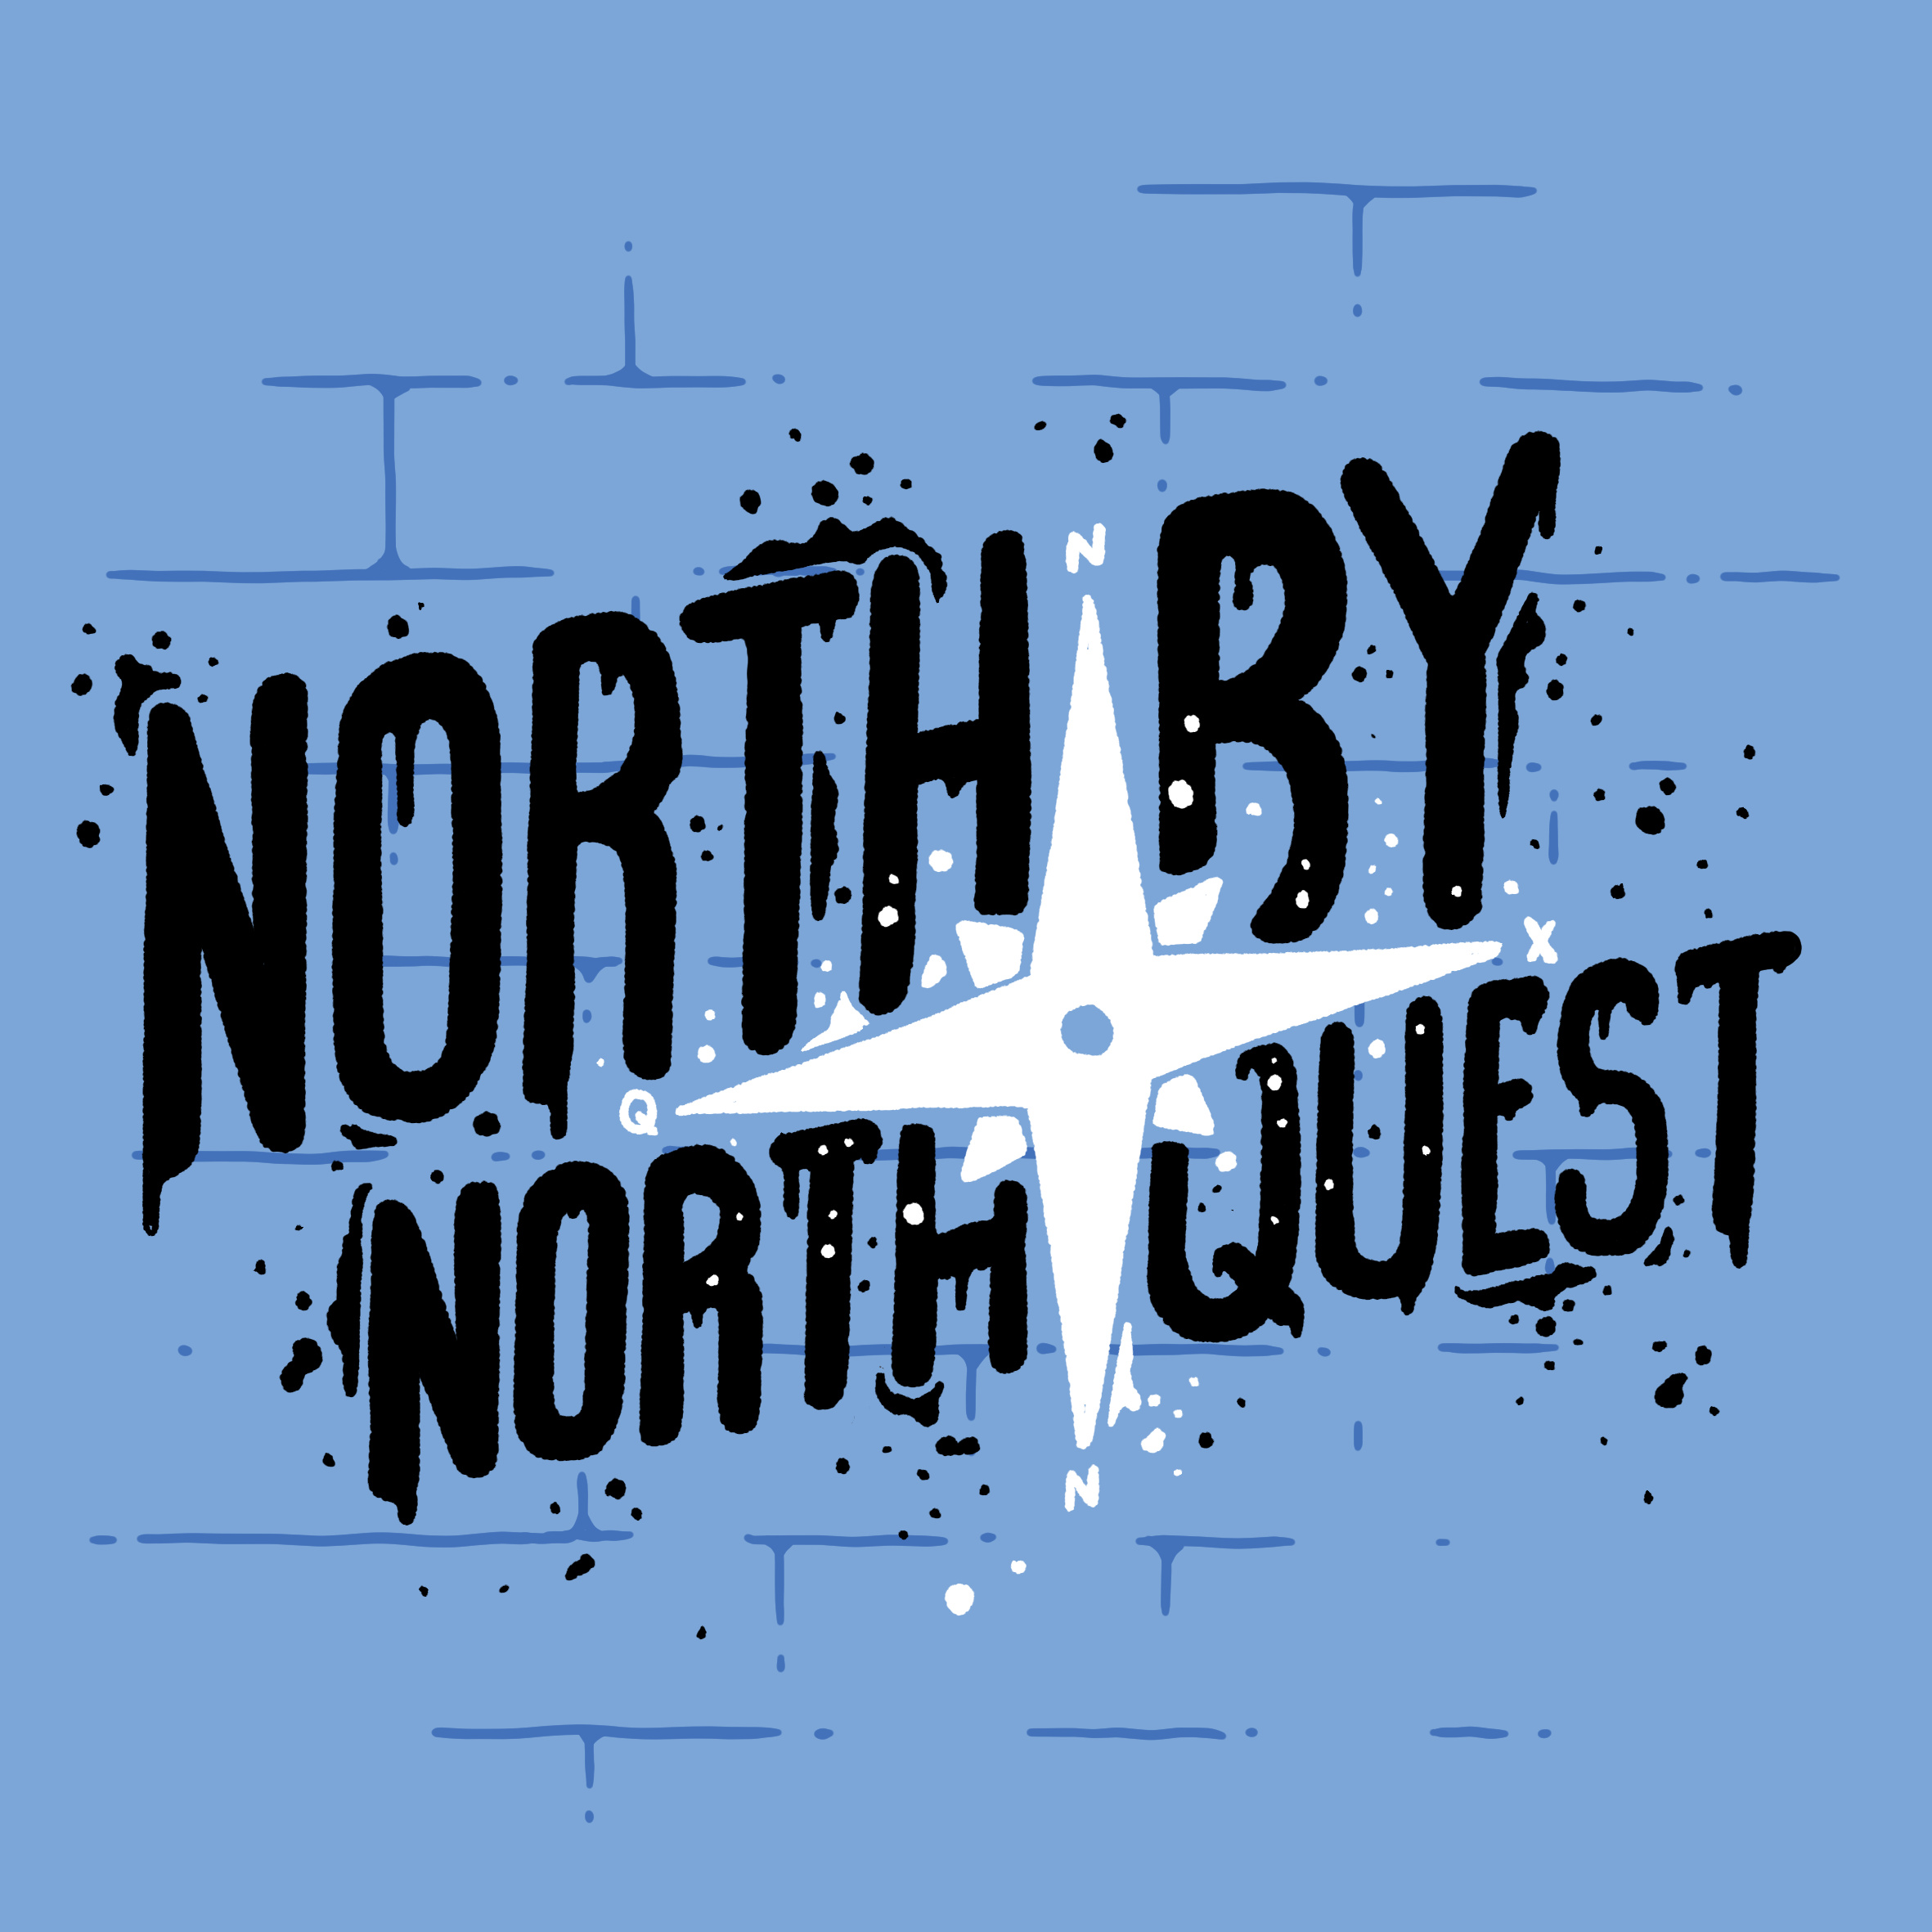 North By North Quest show art